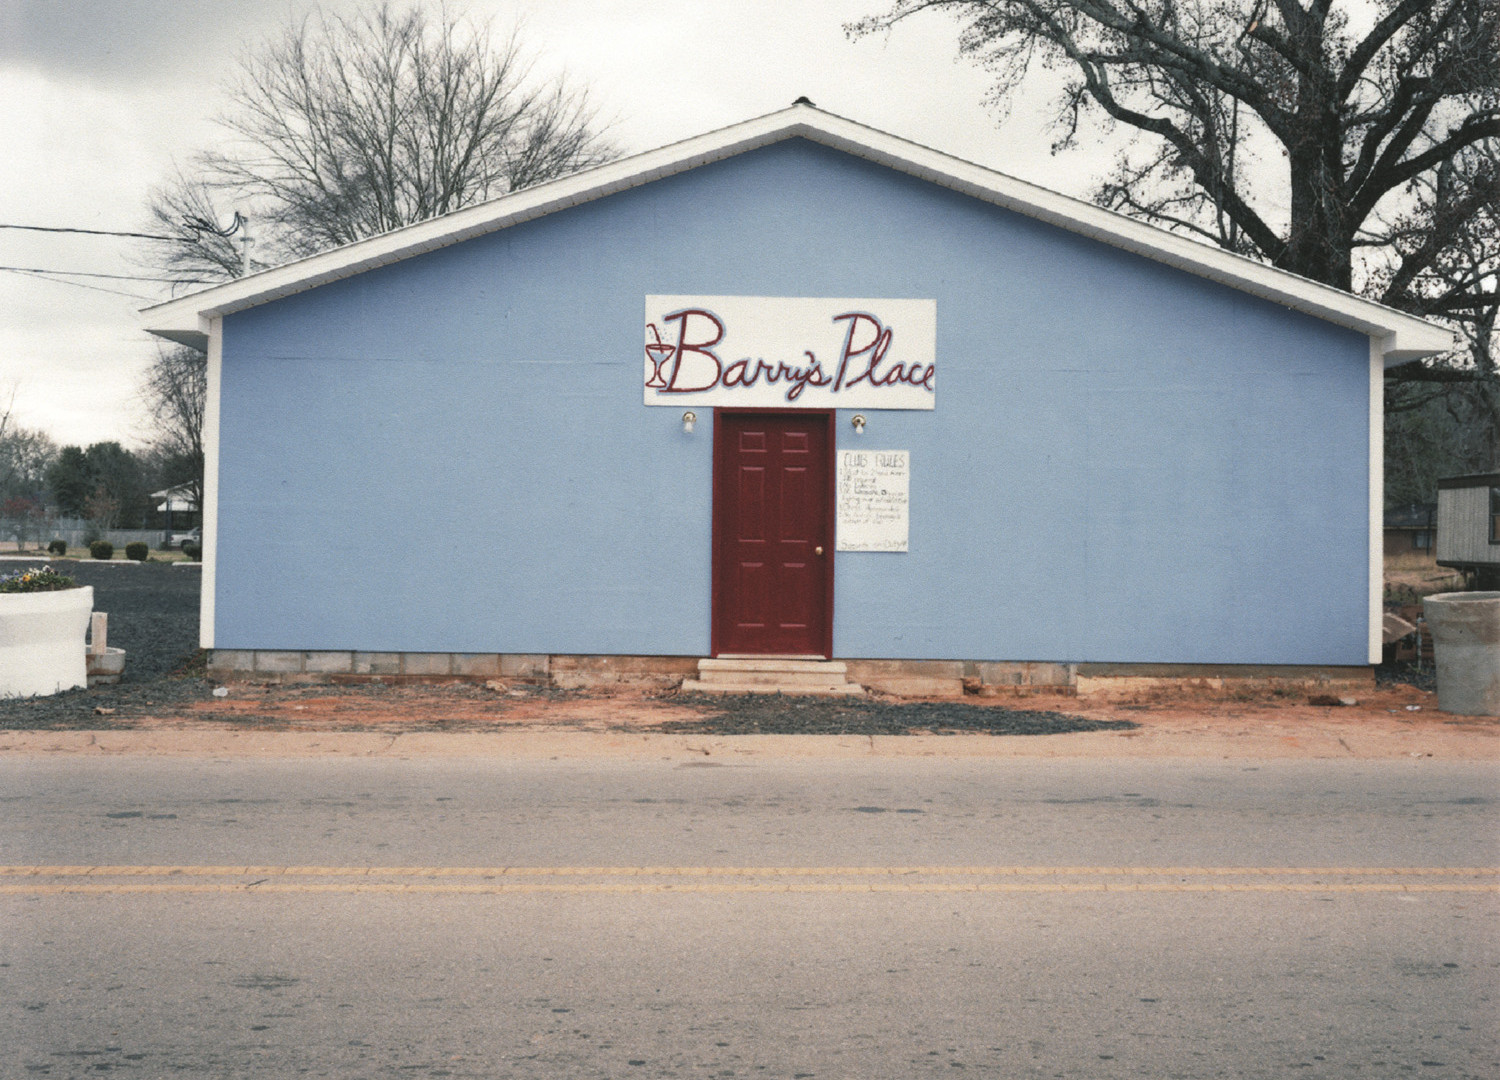 William Christenberry, Barry's Place, Greensboro, Alabama, 2000